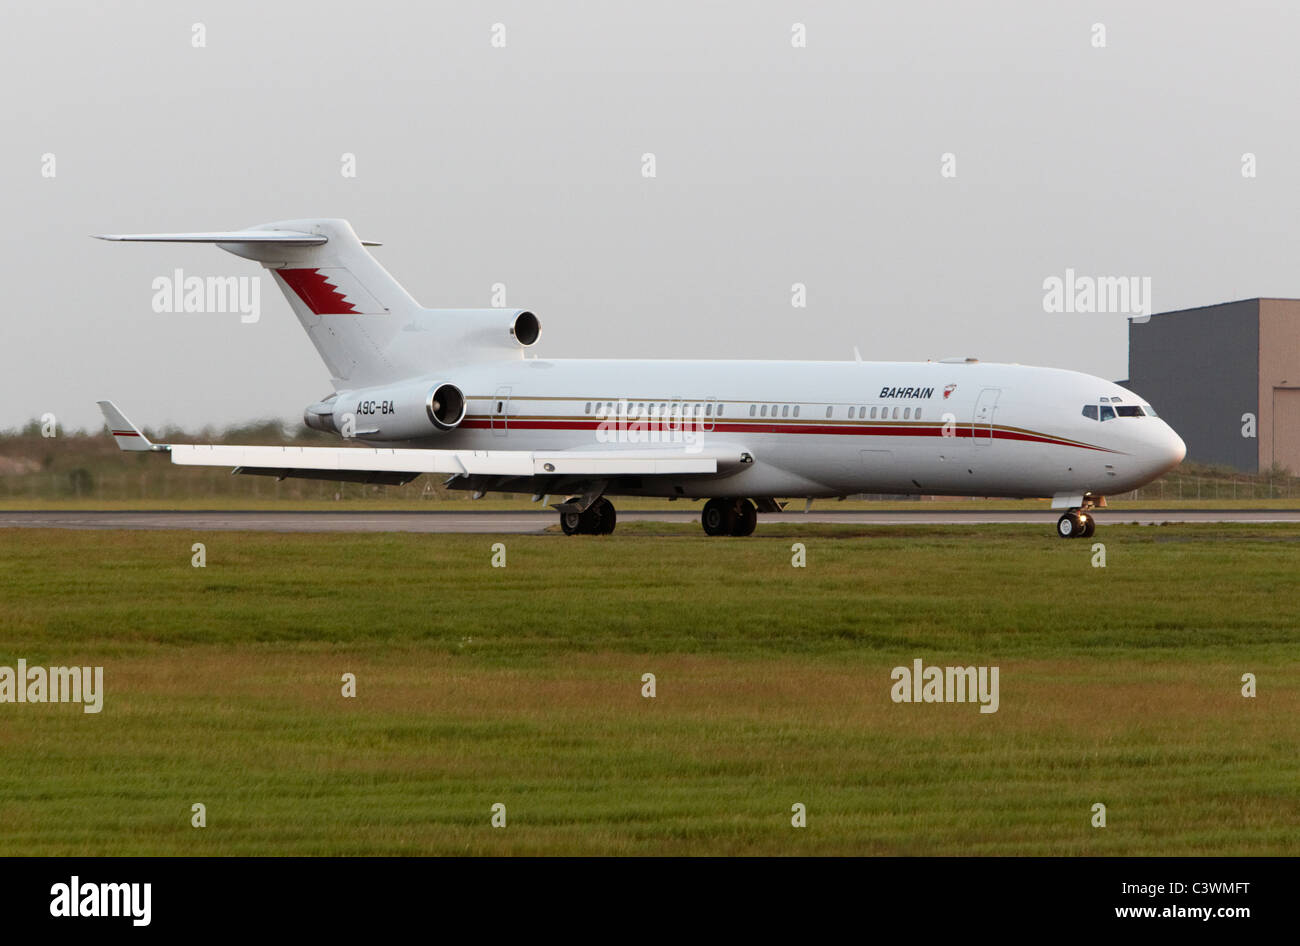 Bahrain Government Boeing 727-200 taxing after landing - Stock Image